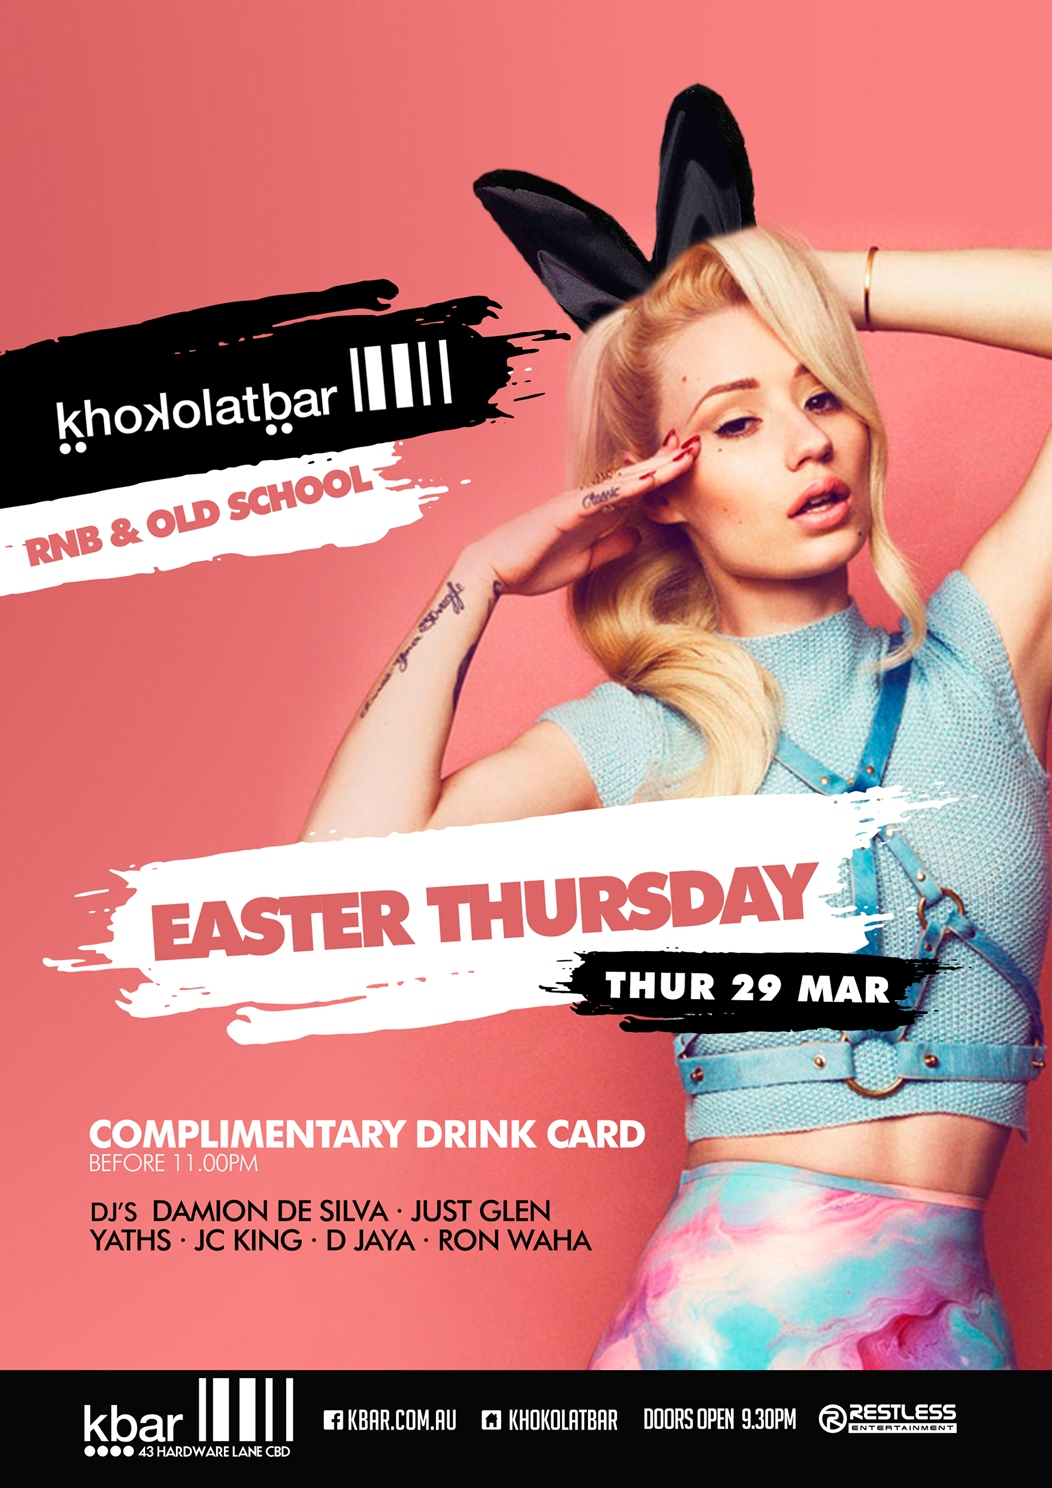 Khokolat Bar – Easter Thursday